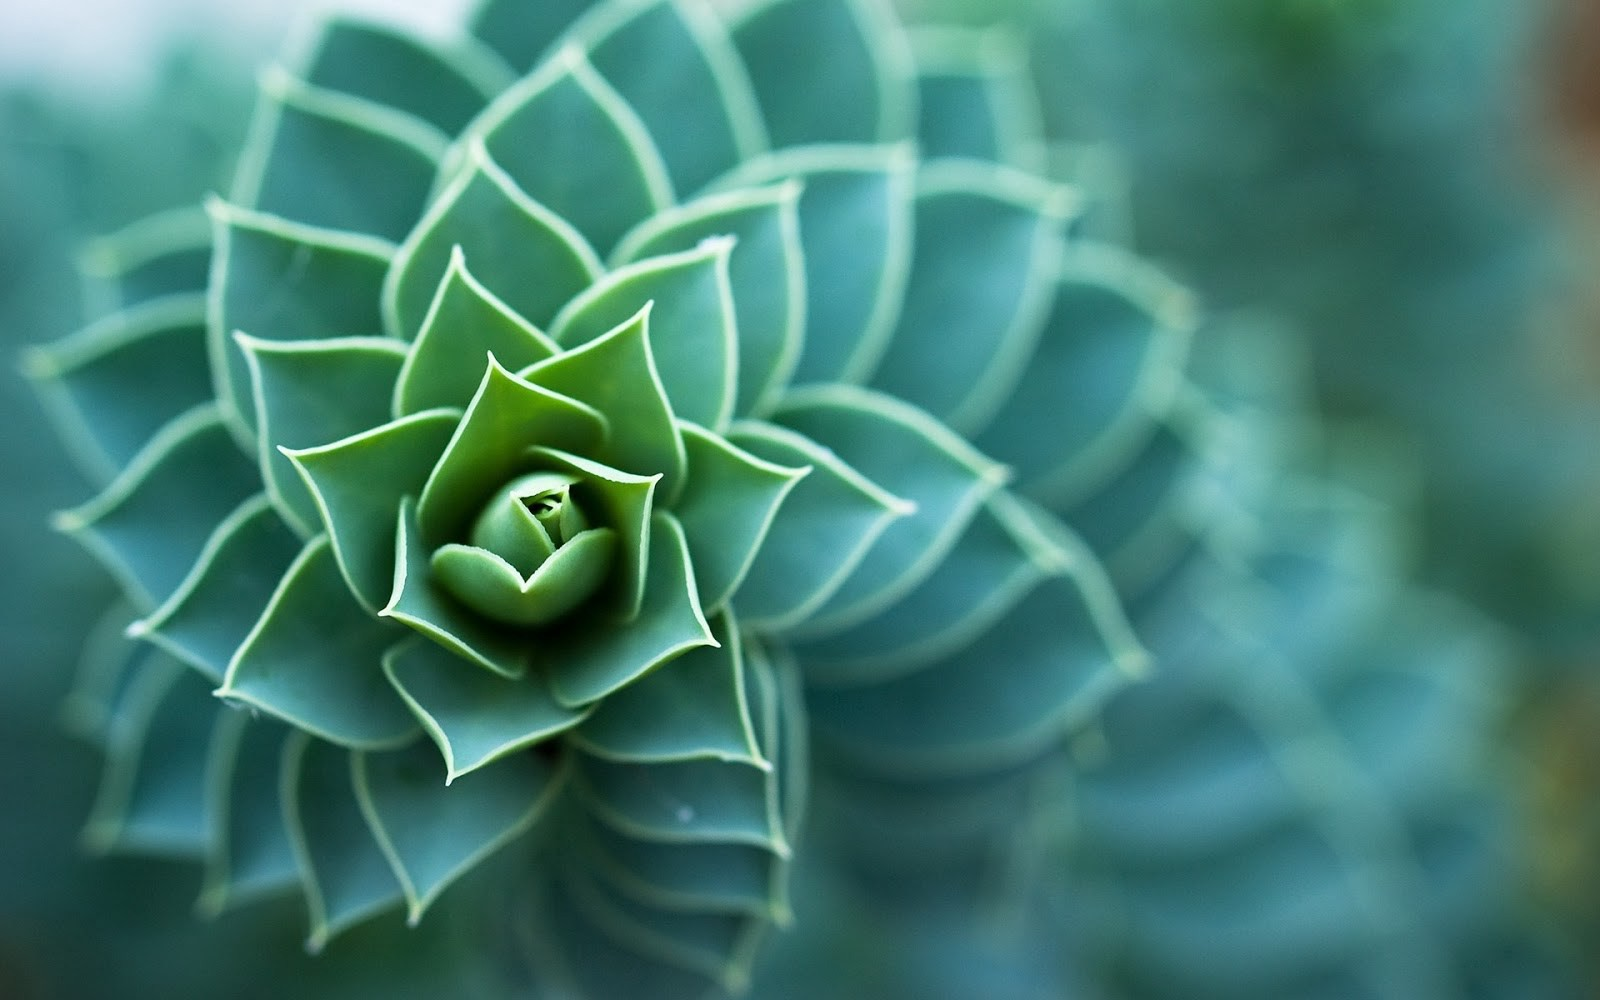 Biomimicry in the Built Environment Image